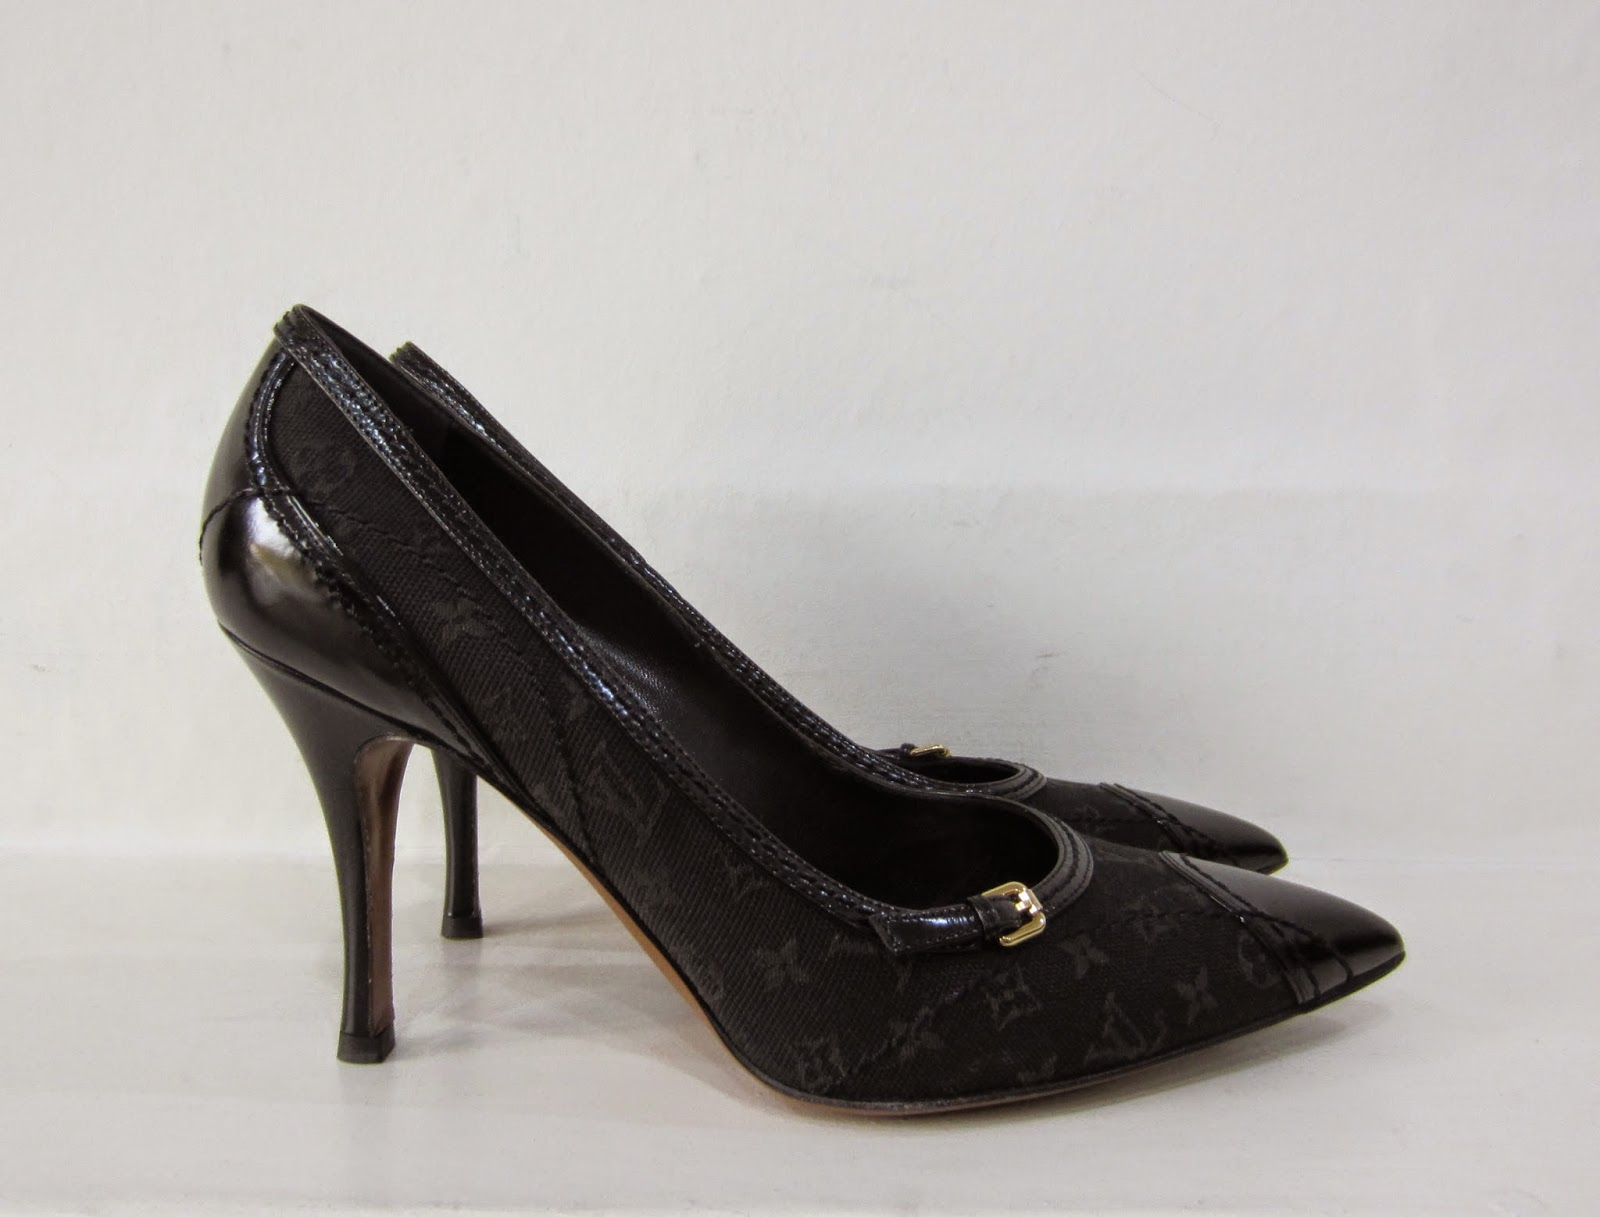 Louis Vuitton Black Fabric Shoes with Leather Trim